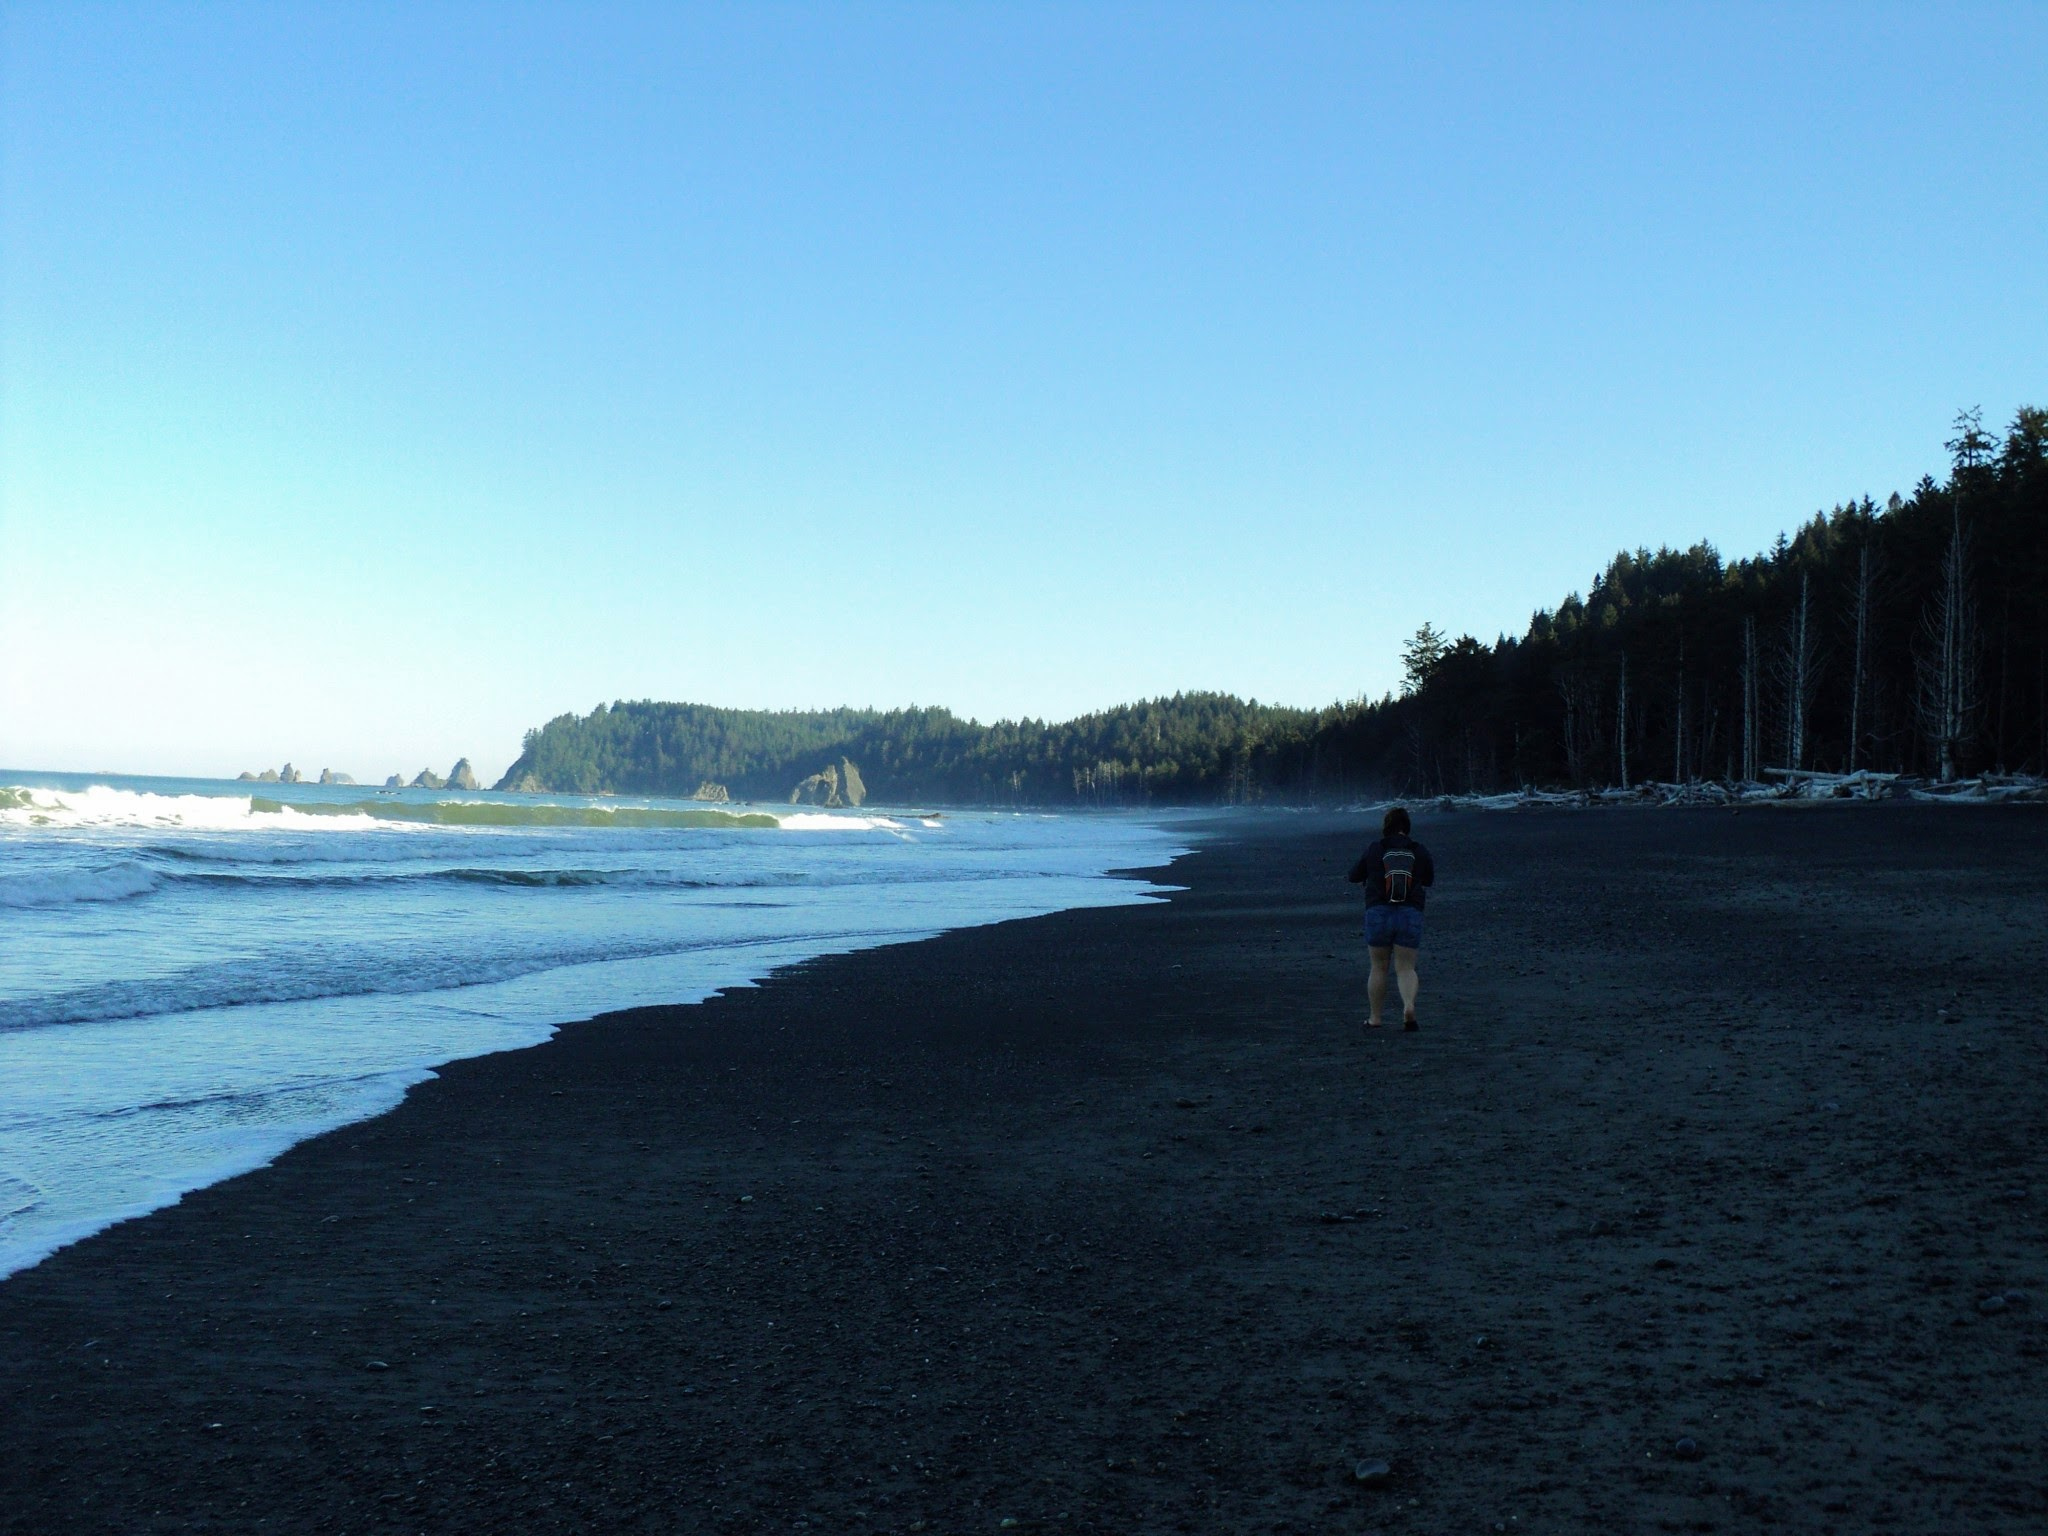 A person walks on a sandy beach next to the forest. In the distance, rocks in the water are lit up by the sun. It's early morning and the beach is still in shadow